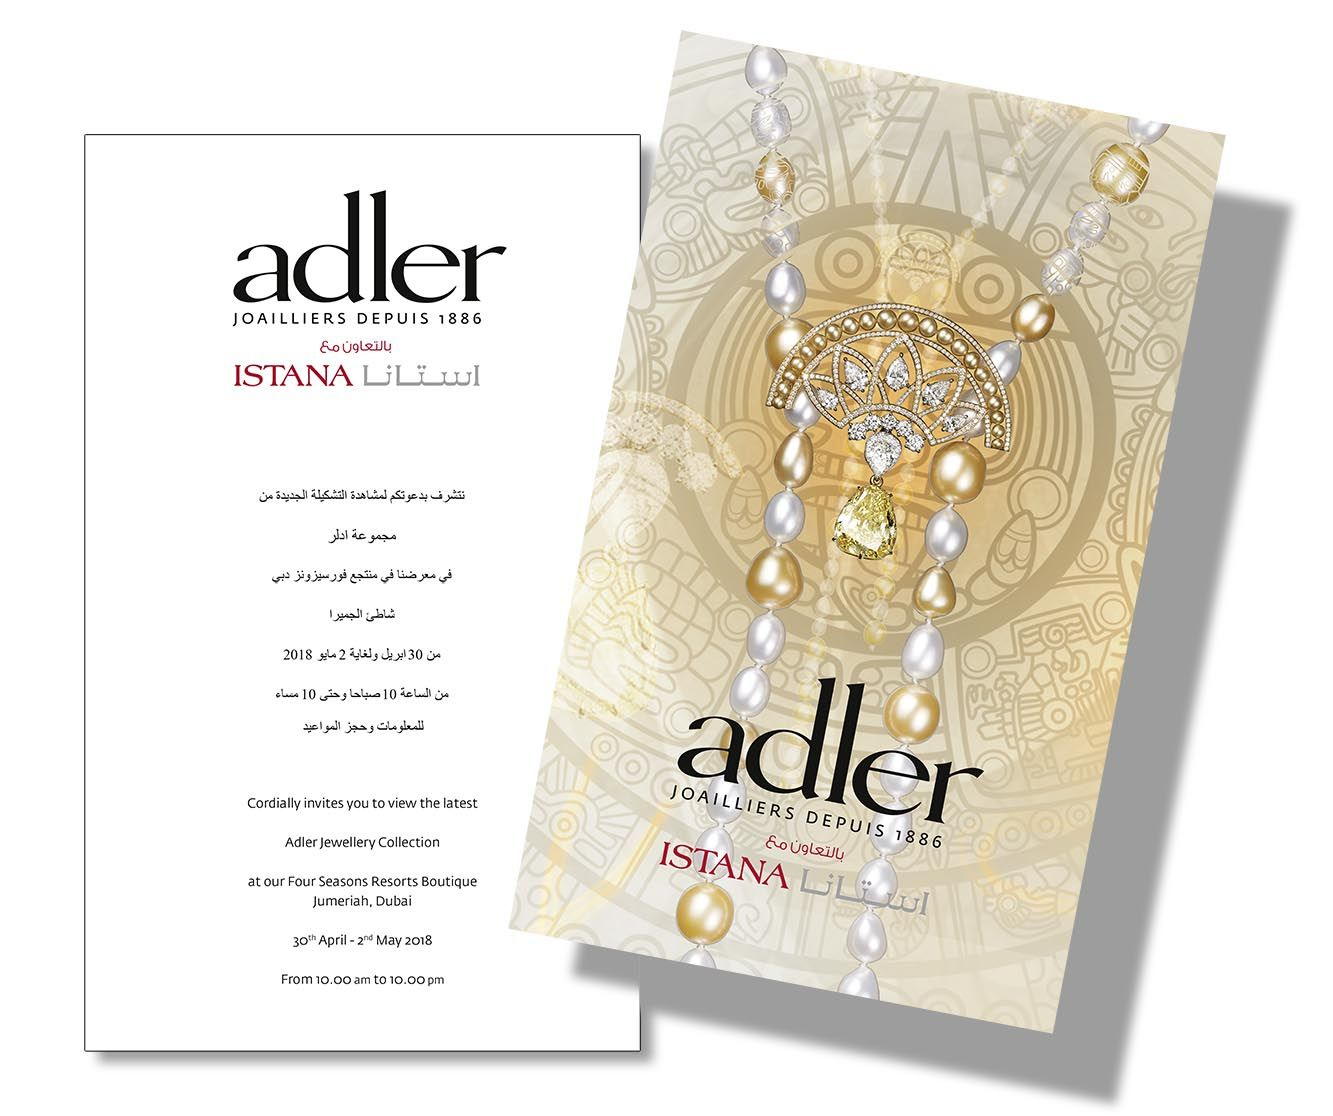 Adler Jewelry Show 30th April- 2nd of May 2018